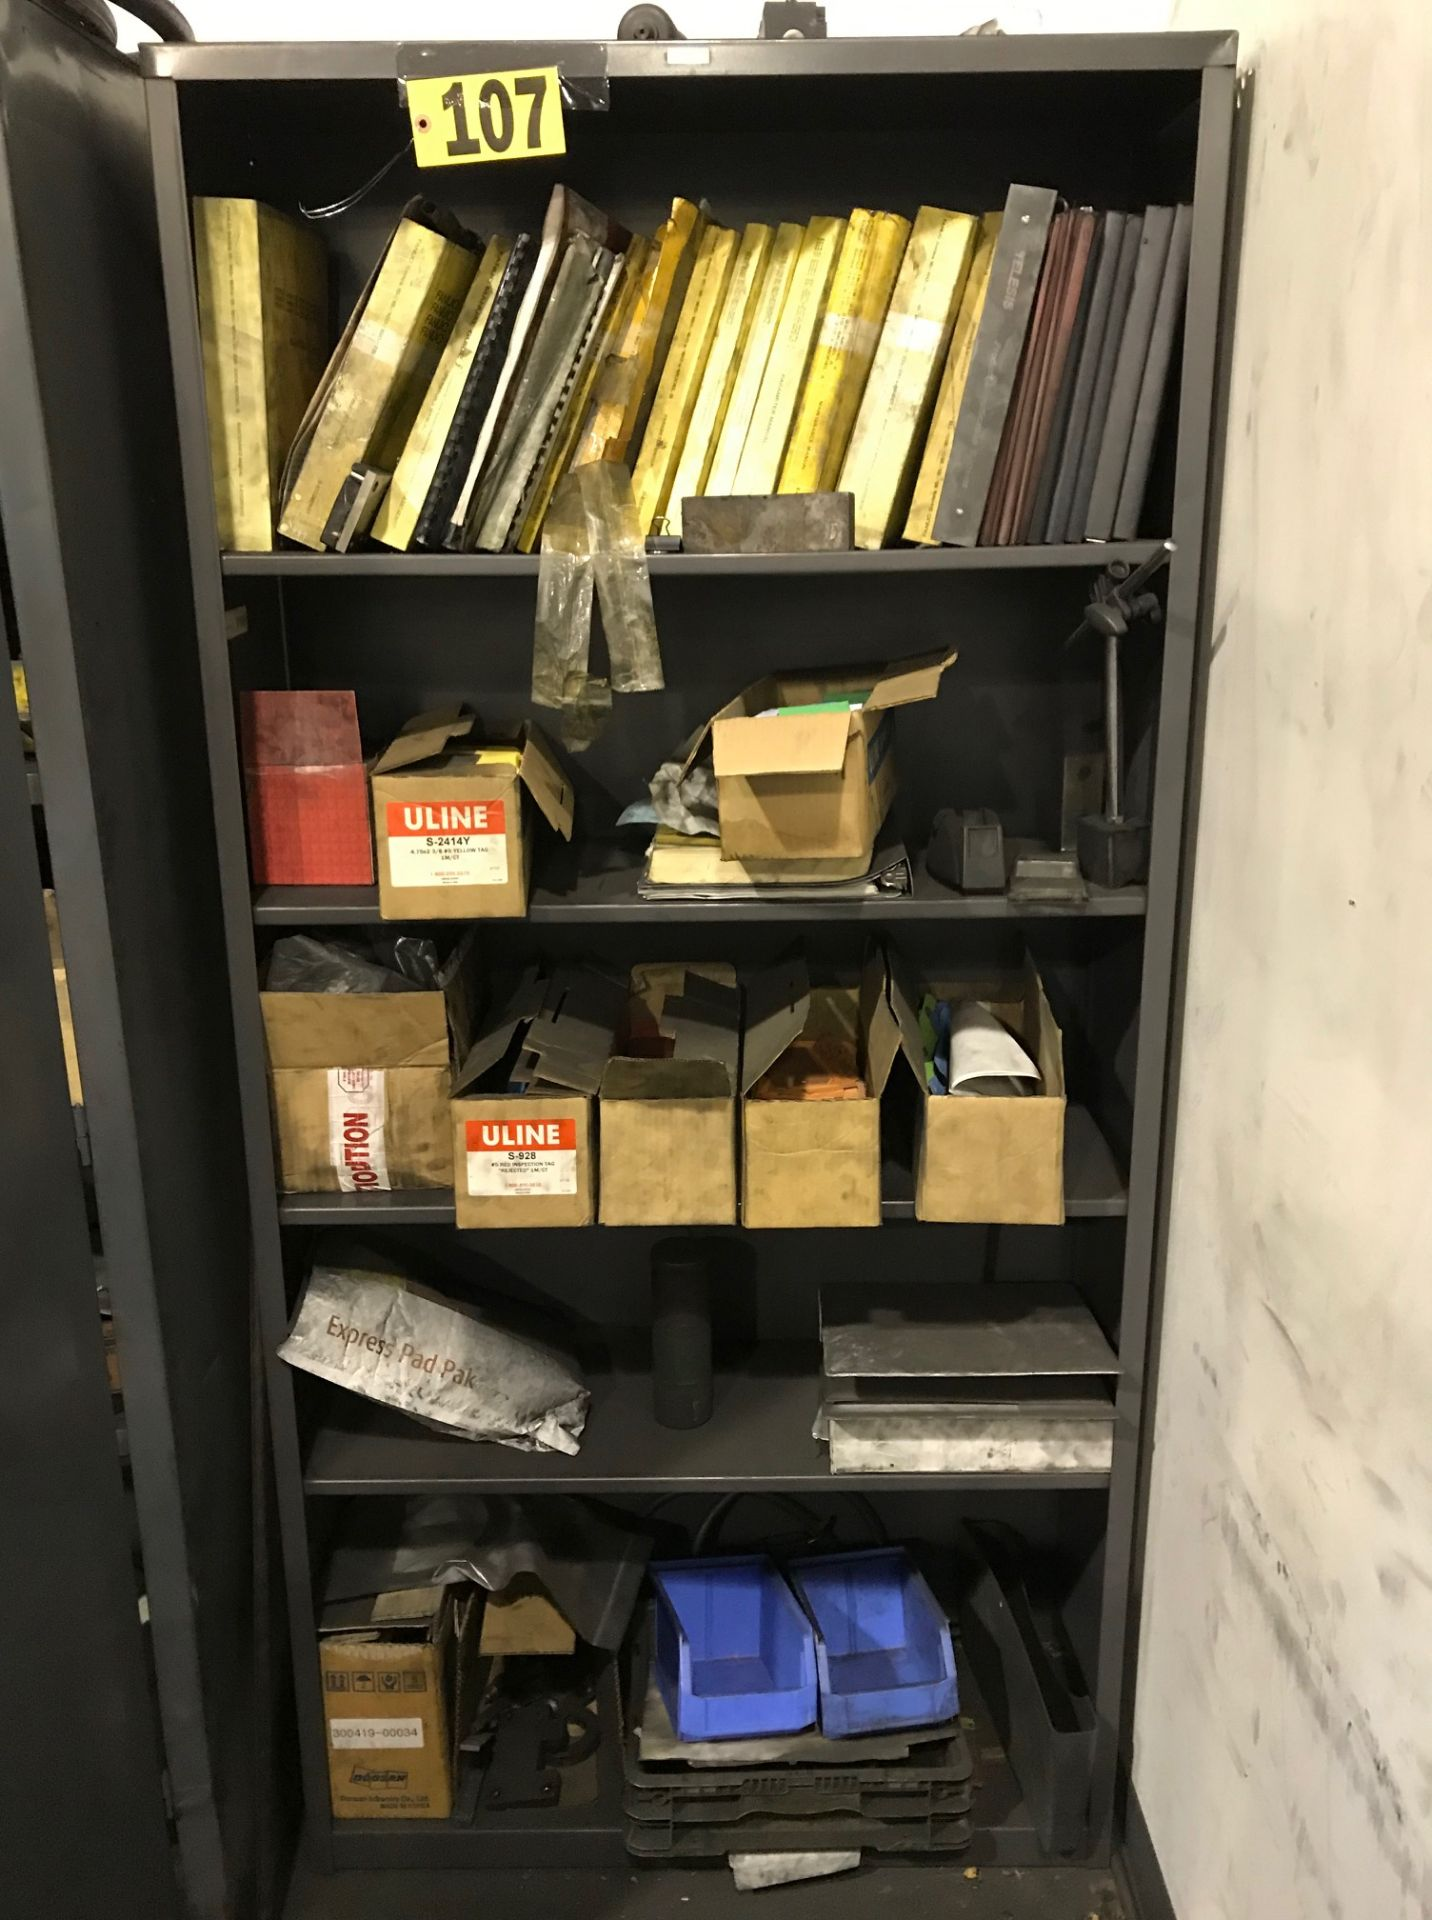 Lot 107 - Hon metal shelf & contents: Lg. selection of tooling supplies